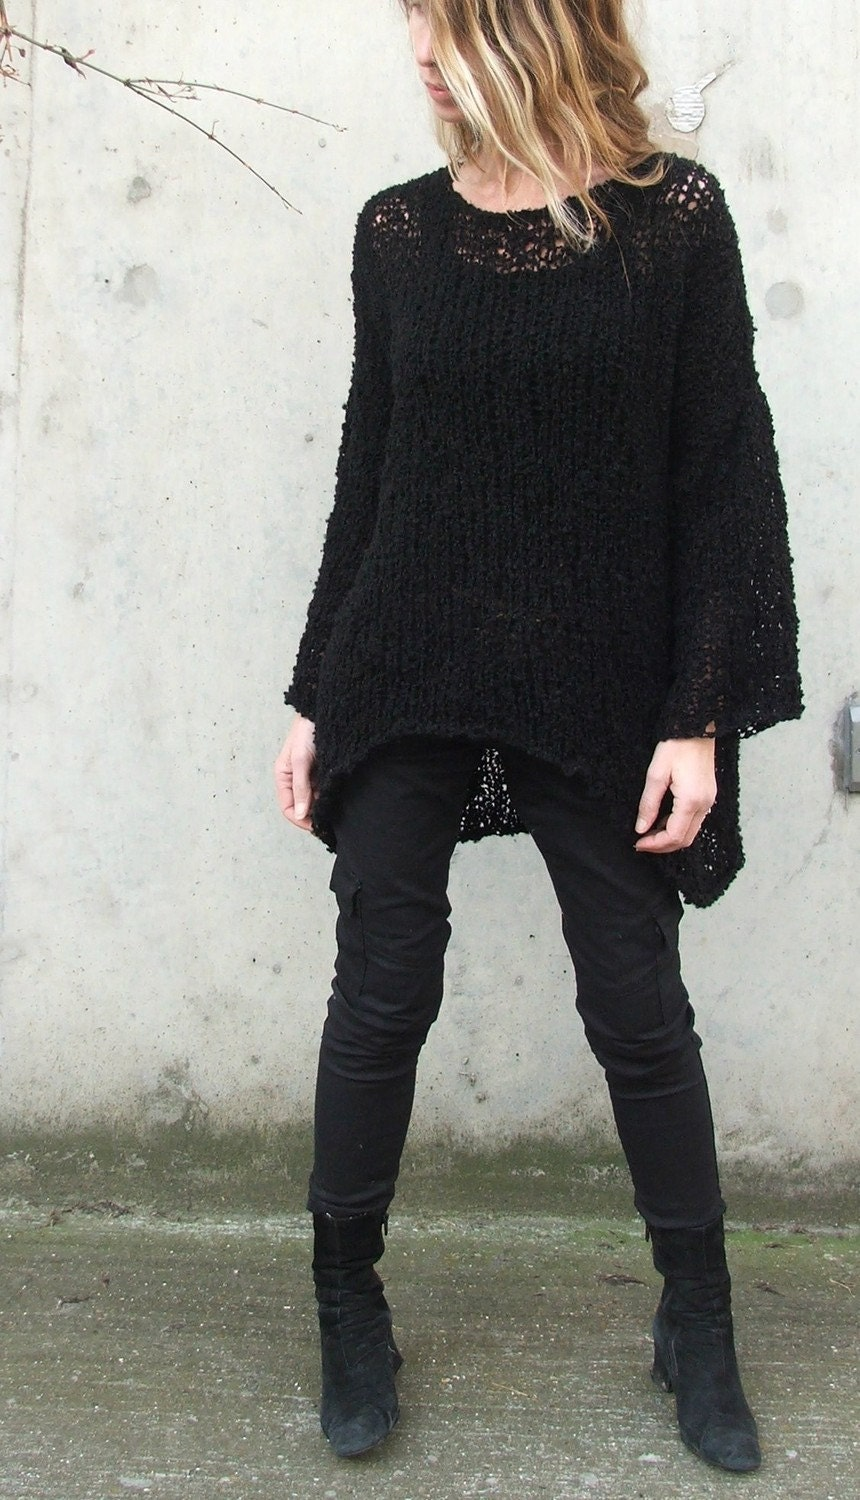 The iLE AiYE warm comfy sweater in Black